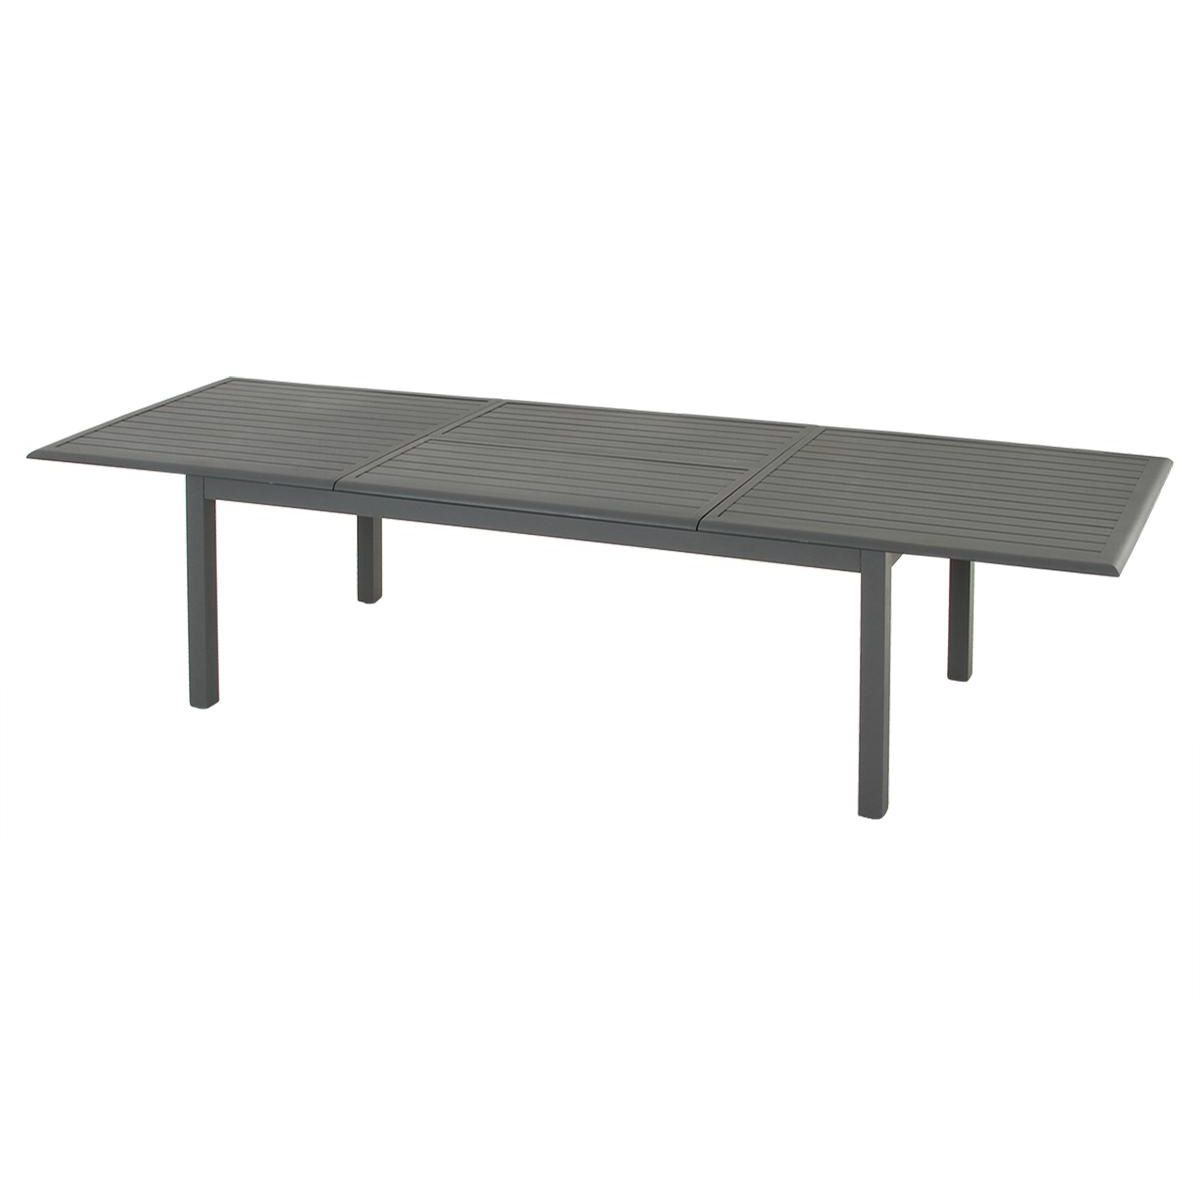 table de jardin extensible aluminium azua max 300 cm ardoise table de jardin eminza. Black Bedroom Furniture Sets. Home Design Ideas